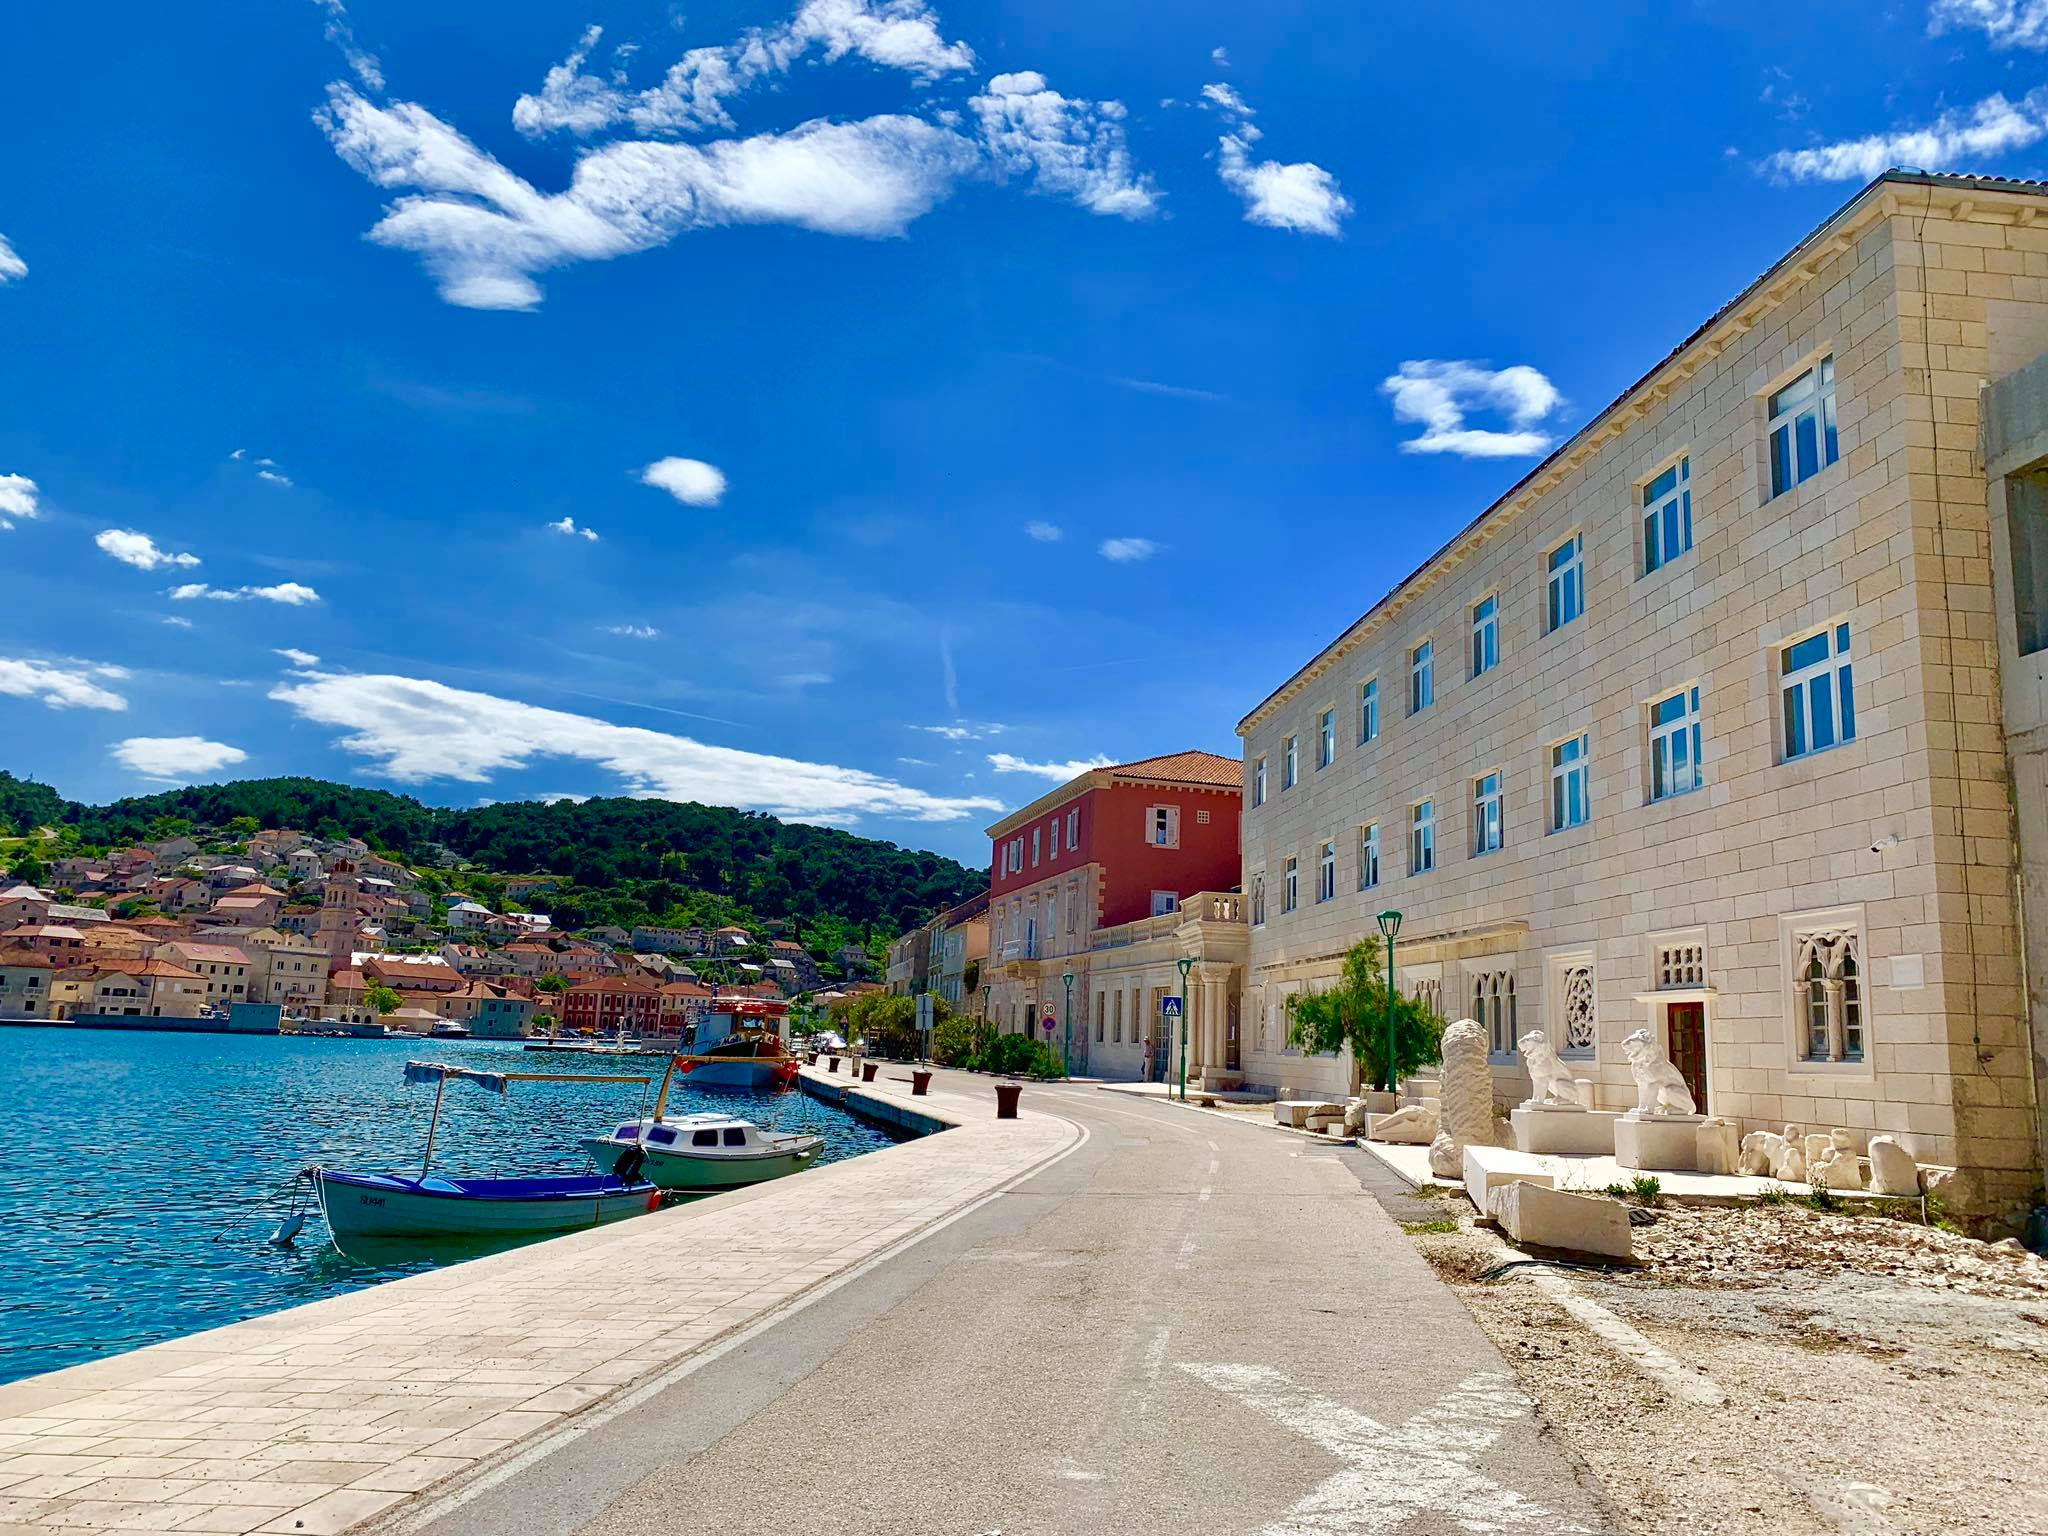 Life On The Road Day 28 Walking around the Small Coastal Town of Pucisca, Island Brac in Croatia13.jpg